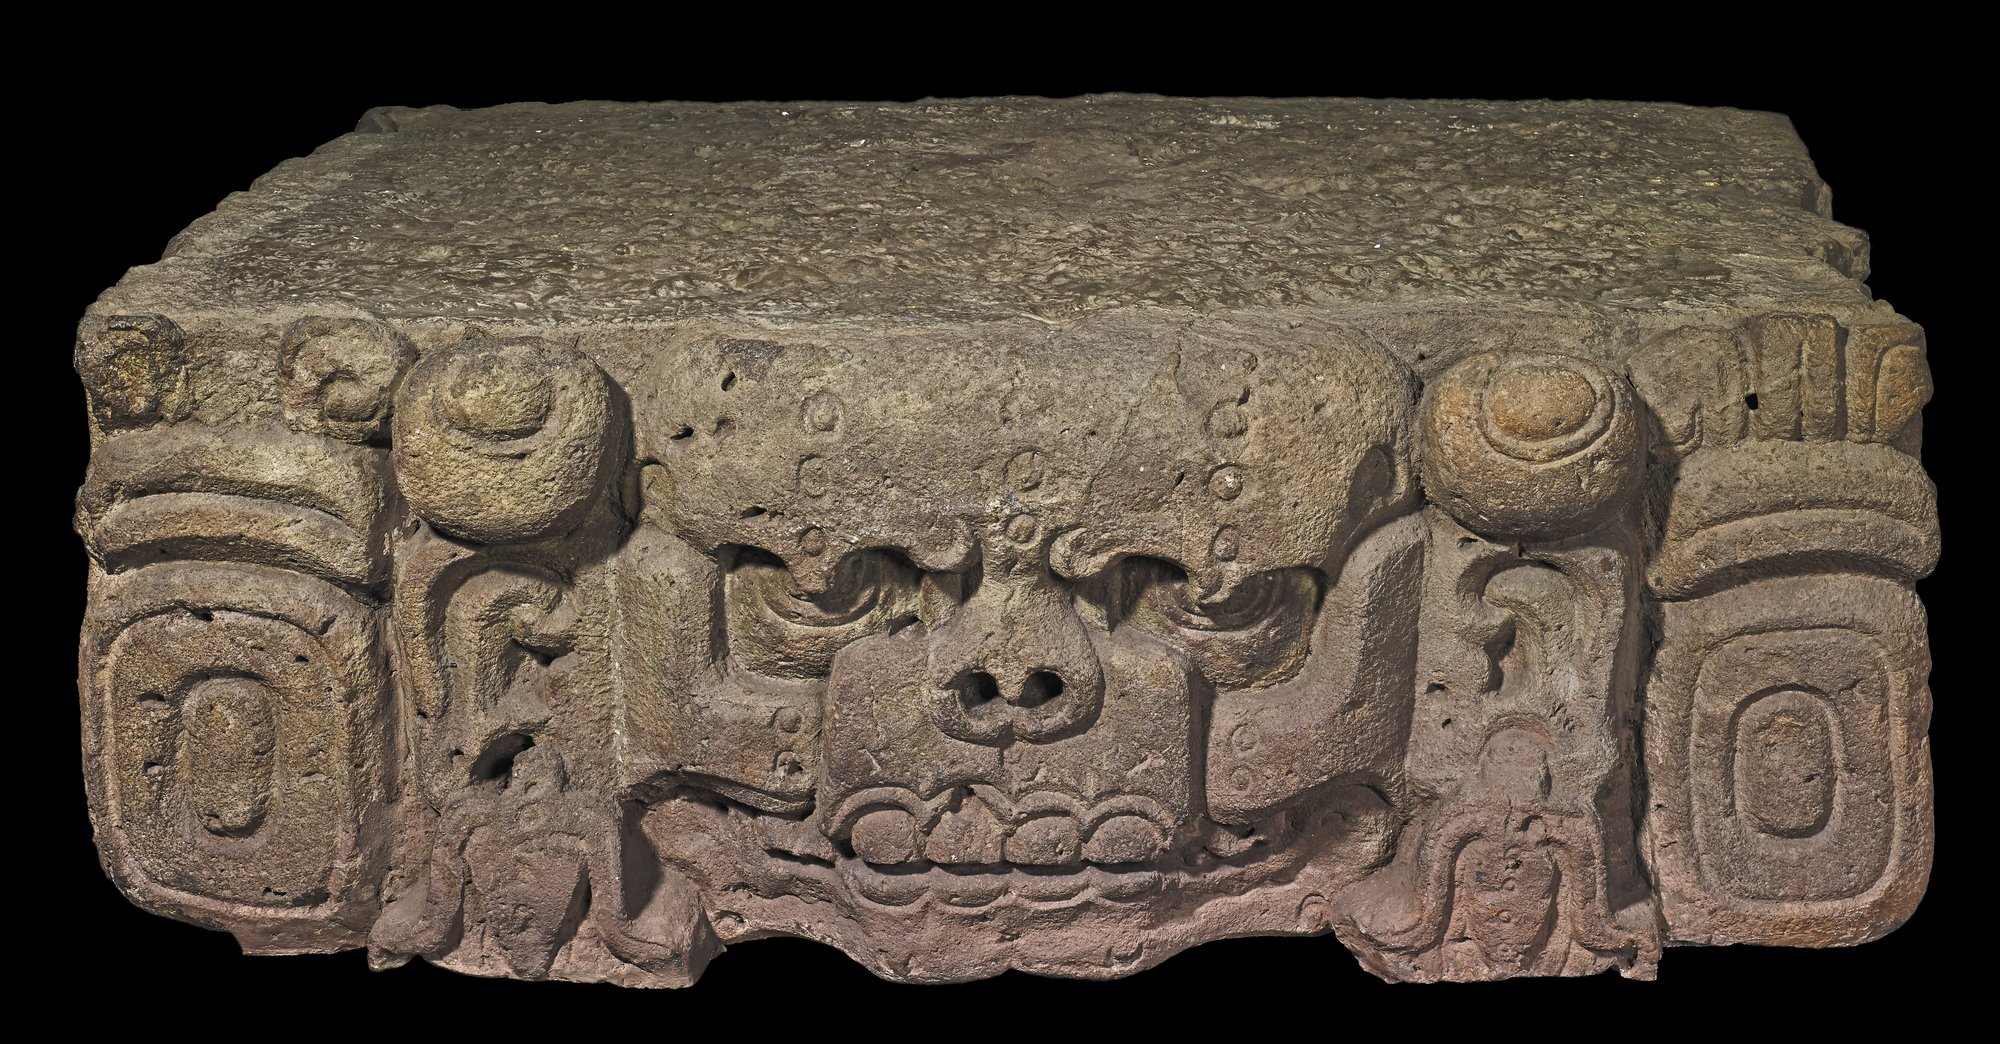 Explore the Maya world with the British Museum